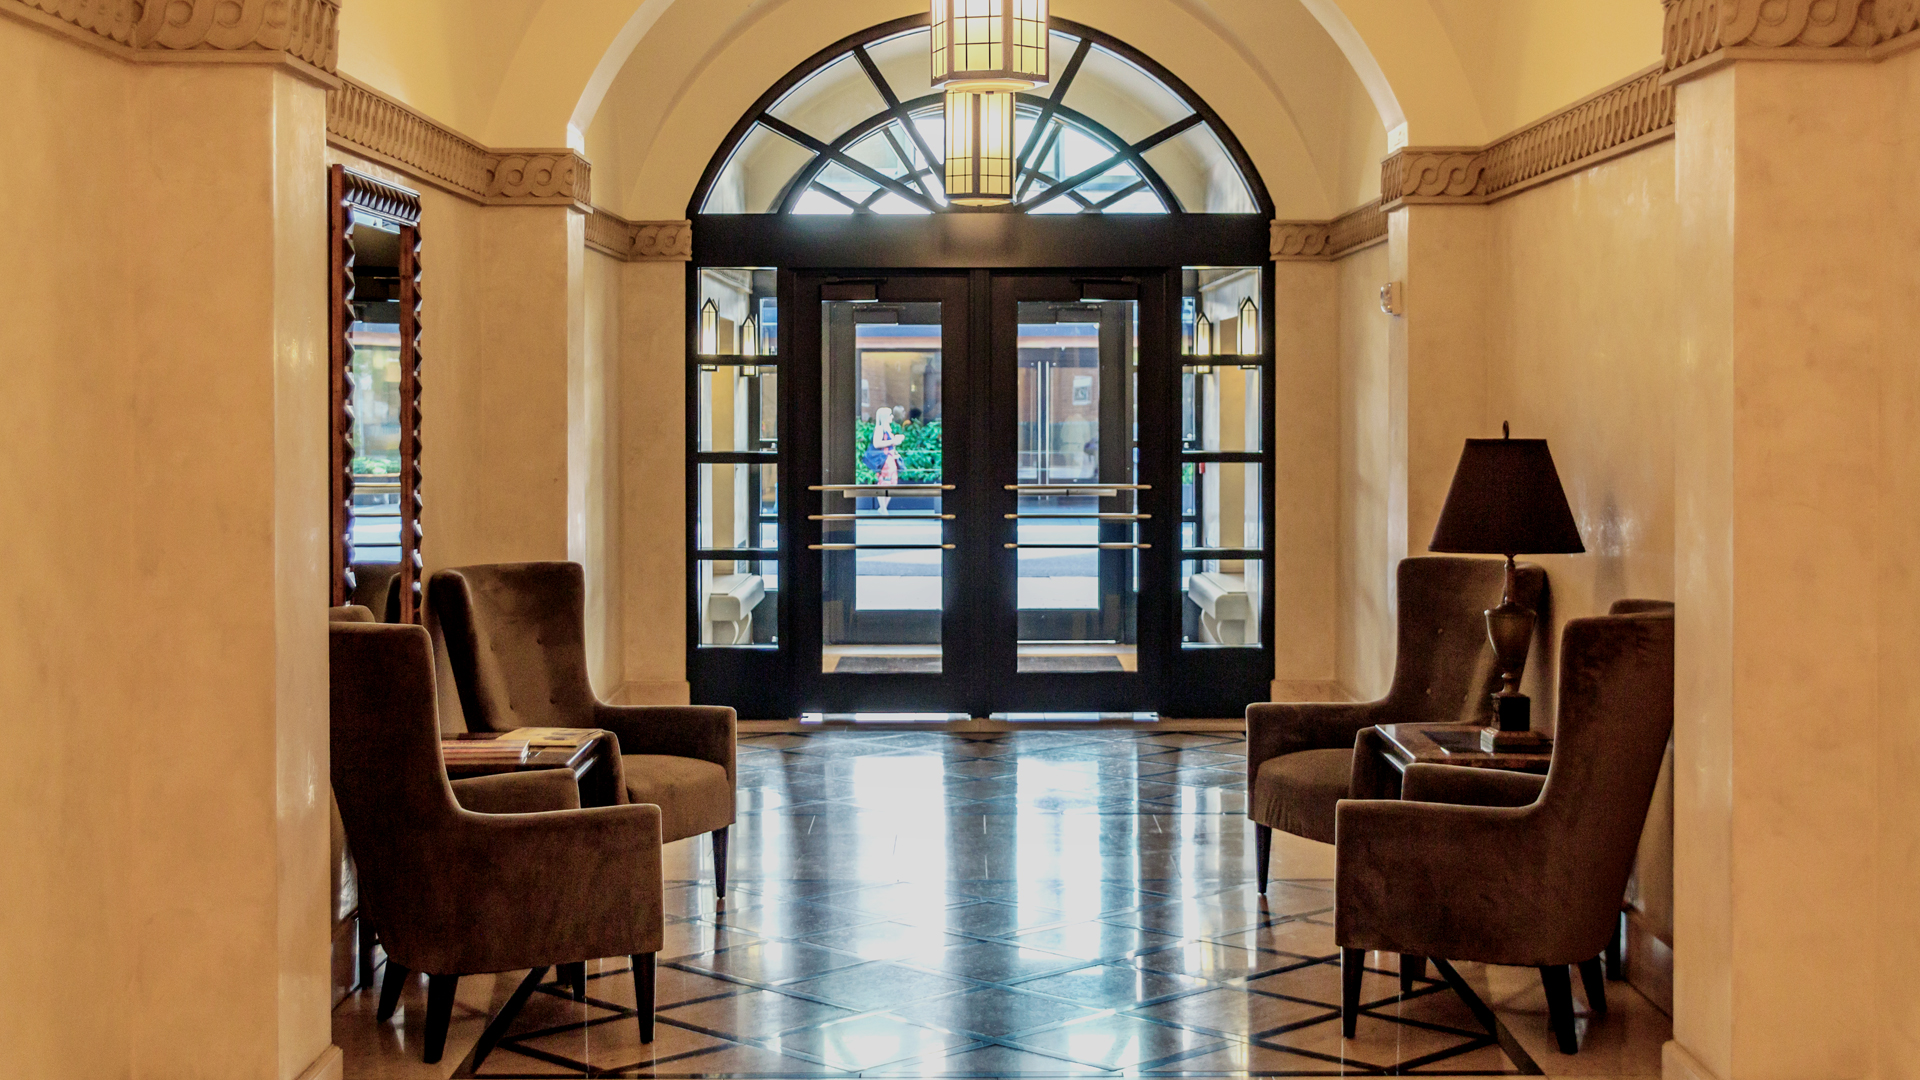 <p>Fifteen years after completion, 16 Market Square's 183,000 square feet of office space and 23 luxury residences continue to set the high water mark in the neighborhood.</p>